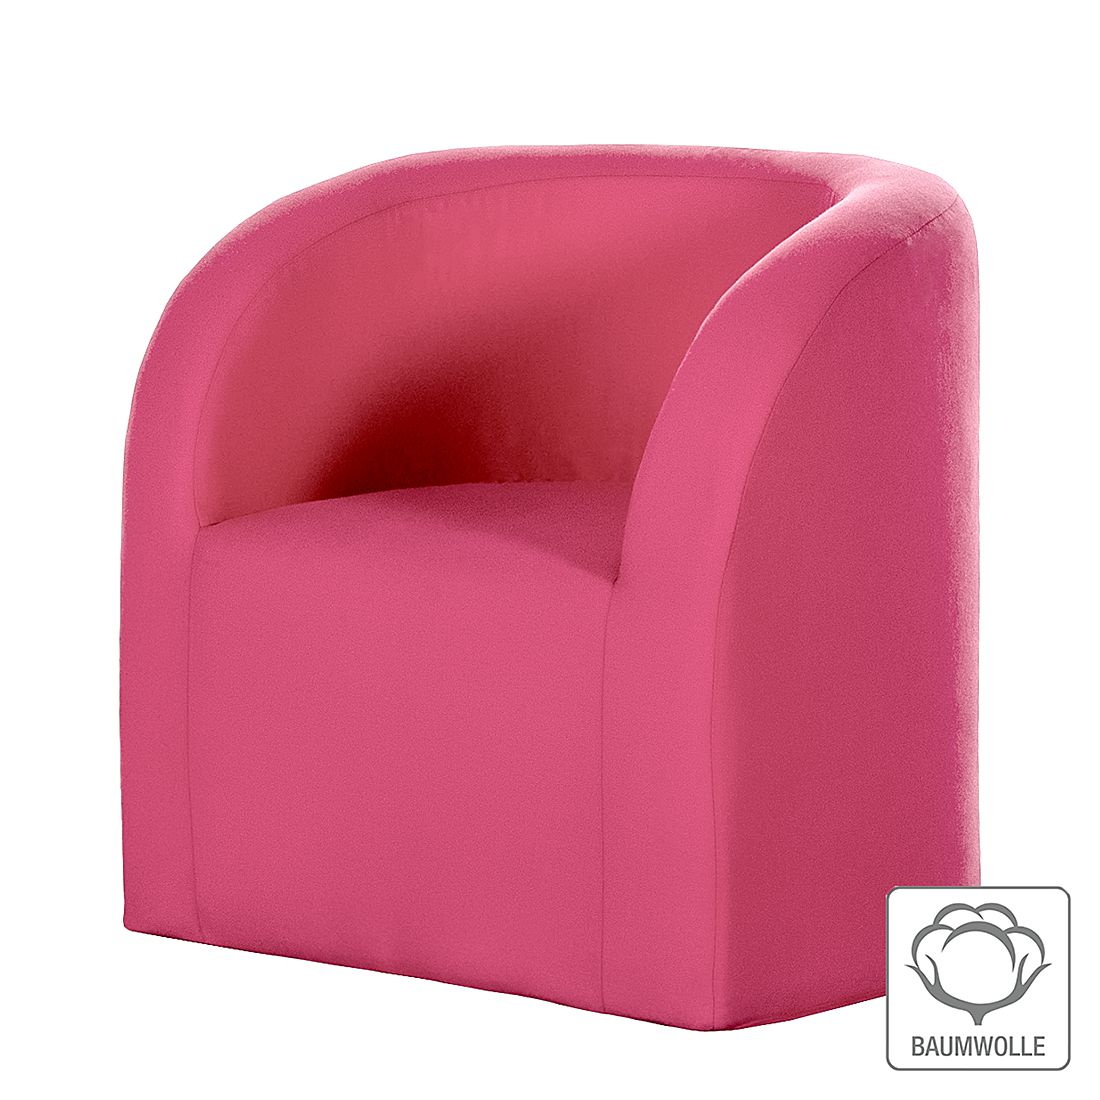 Sessel Emilia – Baumwollstoff Pink, Kids Club Collection günstig bestellen